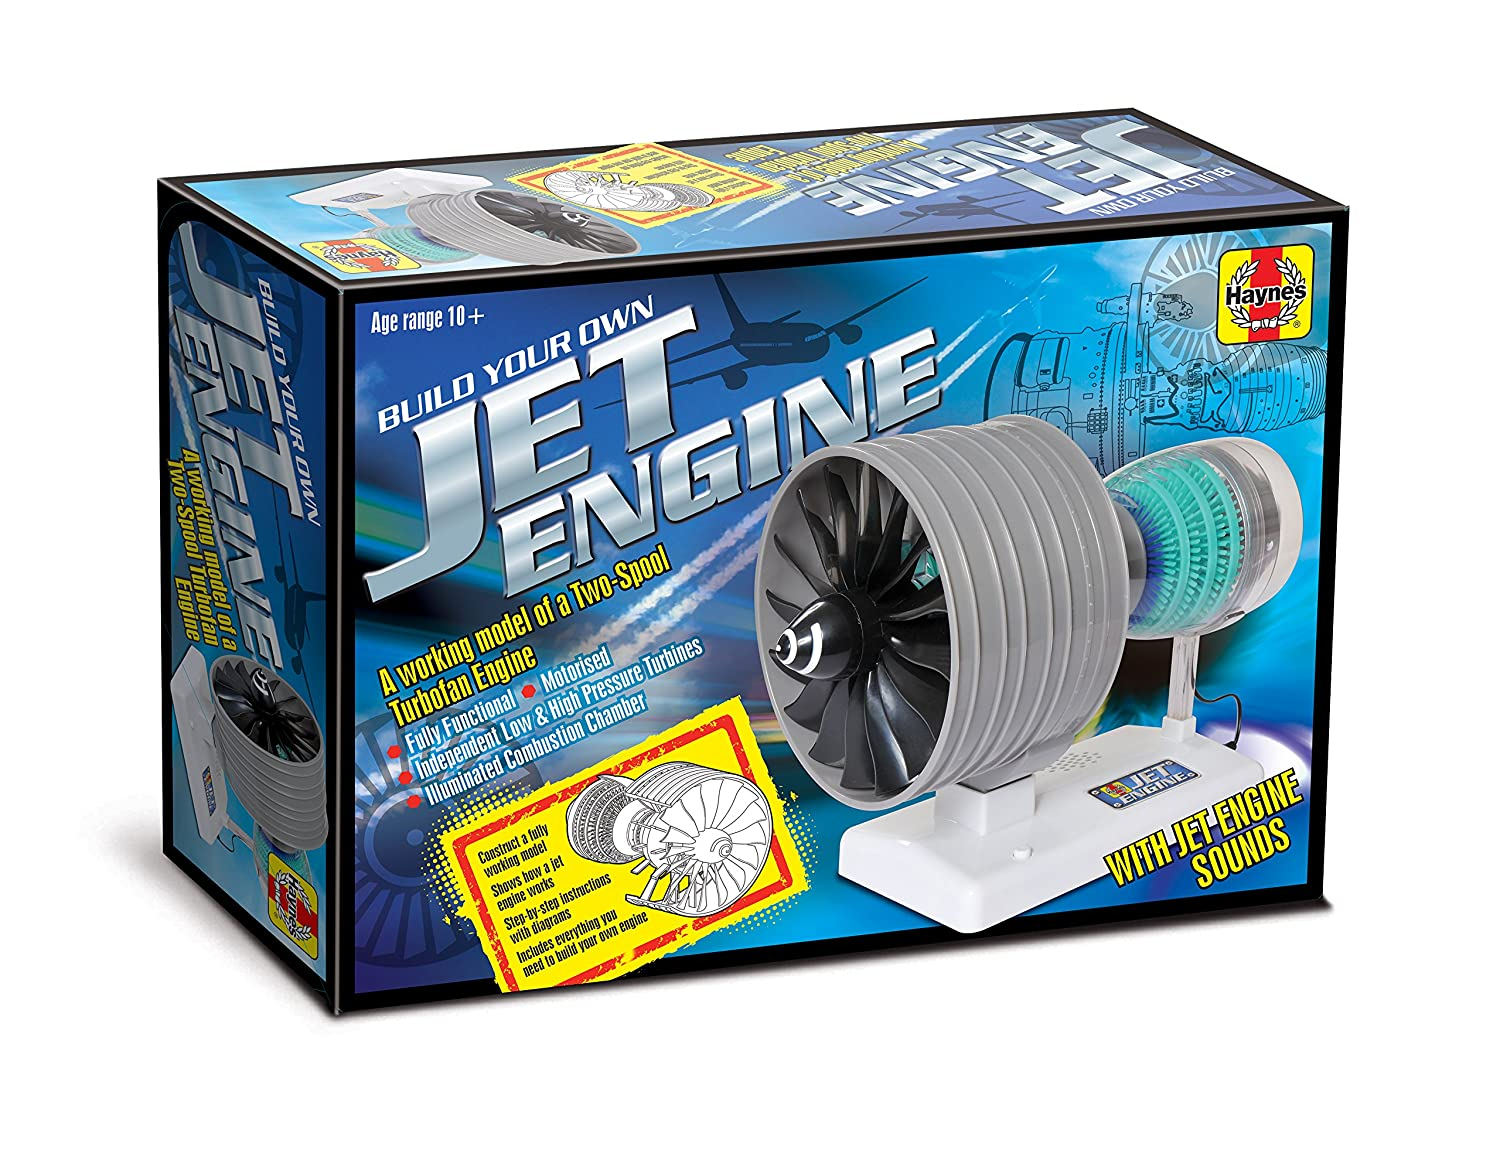 Jet Engine Diagram How It Works.Haynes Build Your Own Jet Engine Fully Working Model Kit